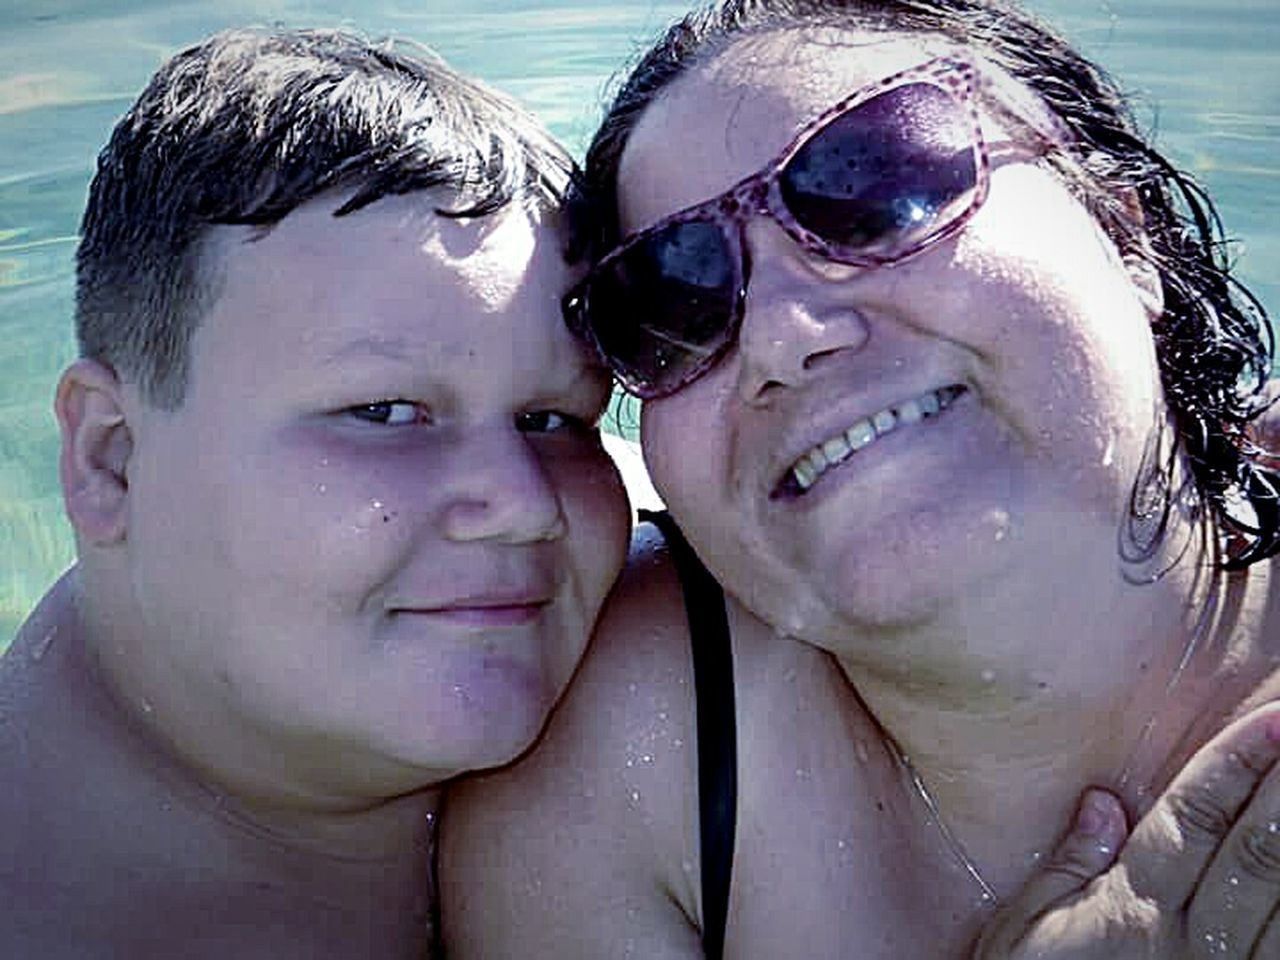 The Essence Of Summer Cheese! Selfie ✌ Mother And Son Swimming In The Lake Having Fun With Kids Water Photography Swimming :) My Happy Place  Green Water Lake Tahoe Taking Photos ❤ Outdoor Photography Thats Me ♥ Waterproof Camera My Son ❤ Selfie ♥ Vacation Time ♡ Enjoying Life Enjoying Life Water Relaxing Moments